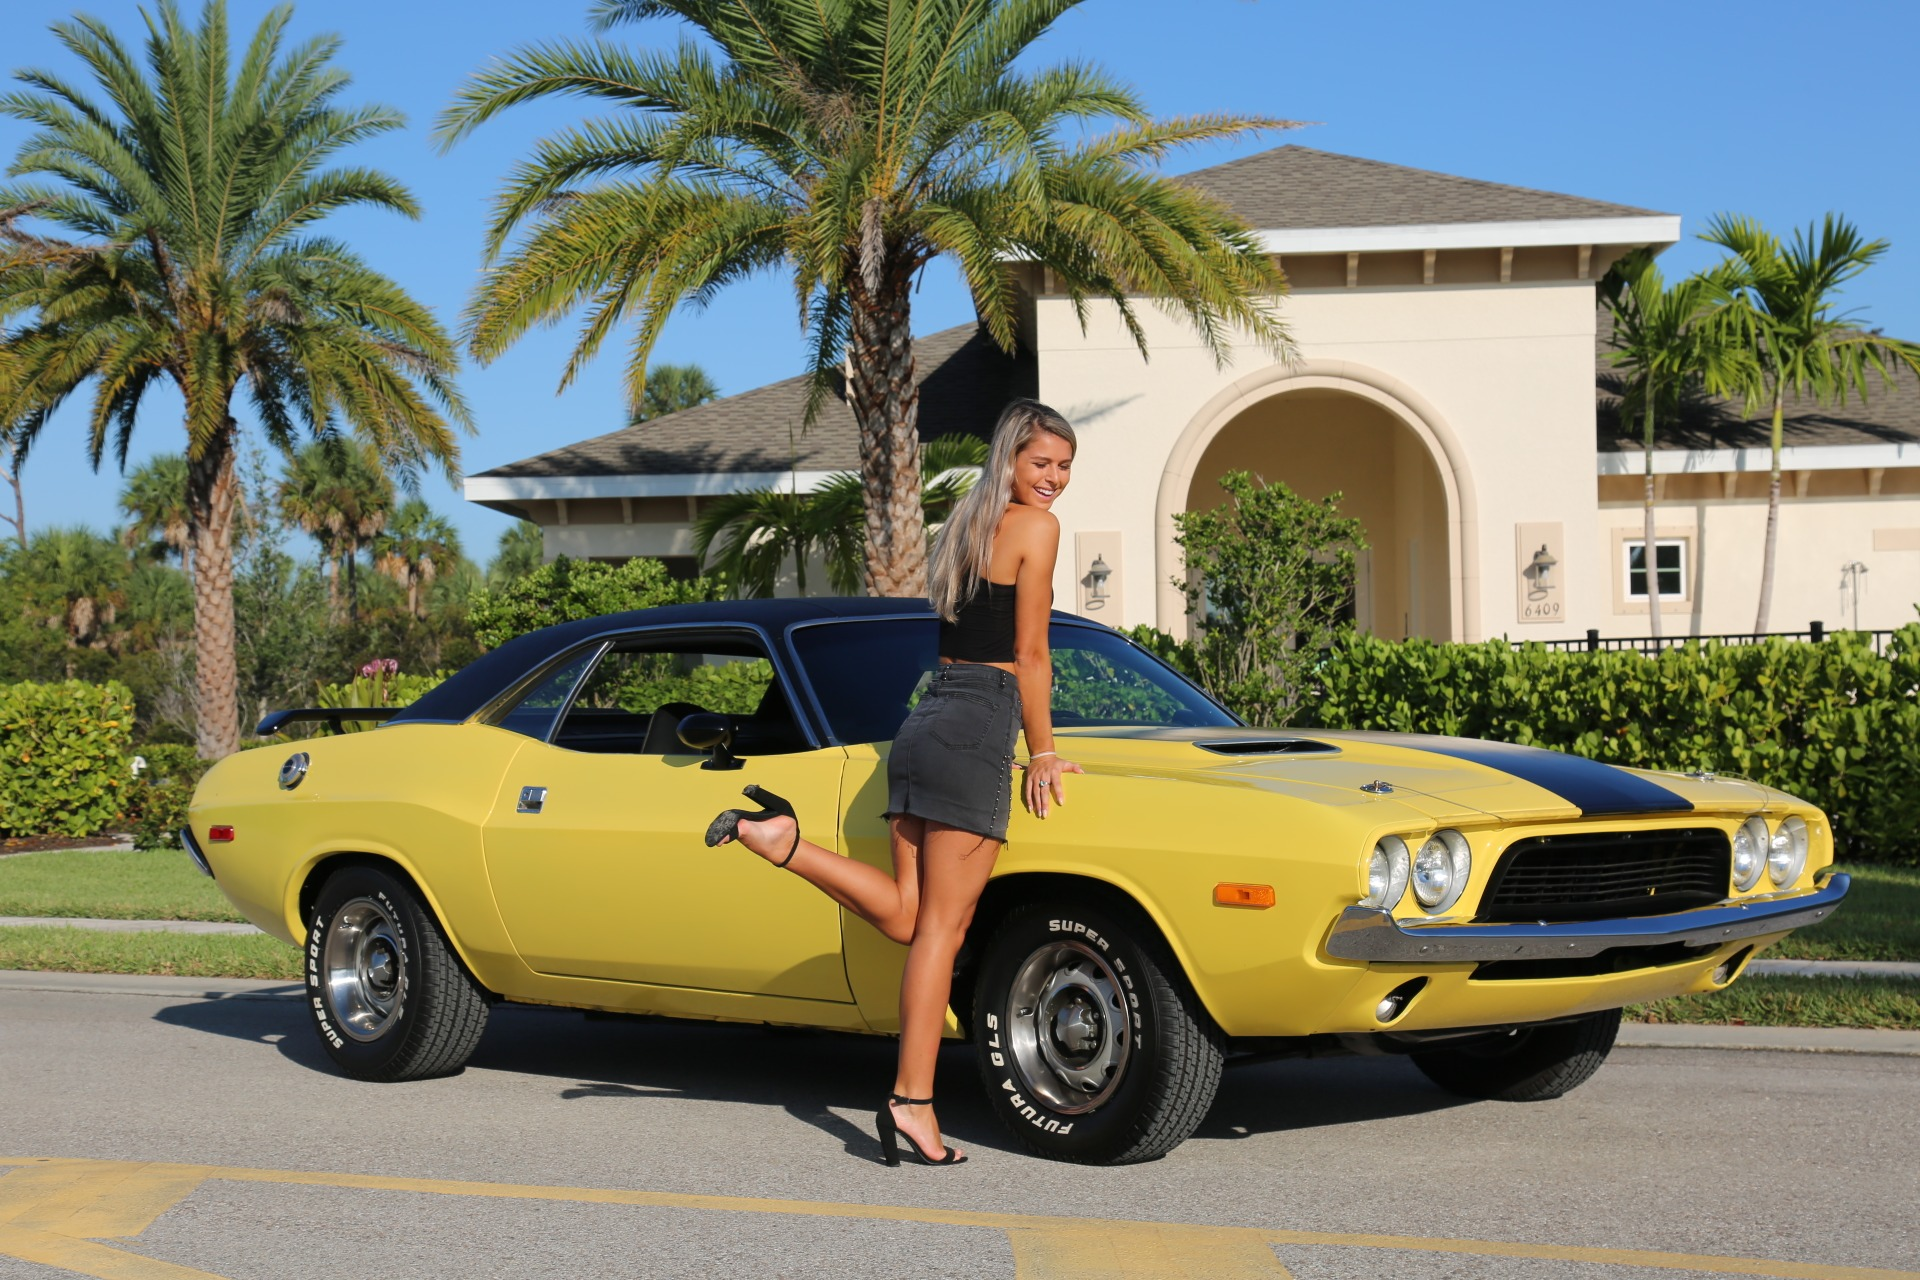 Used 1973 Dodge Challenger 440 V8 for sale $28,000 at Muscle Cars for Sale Inc. in Fort Myers FL 33912 1